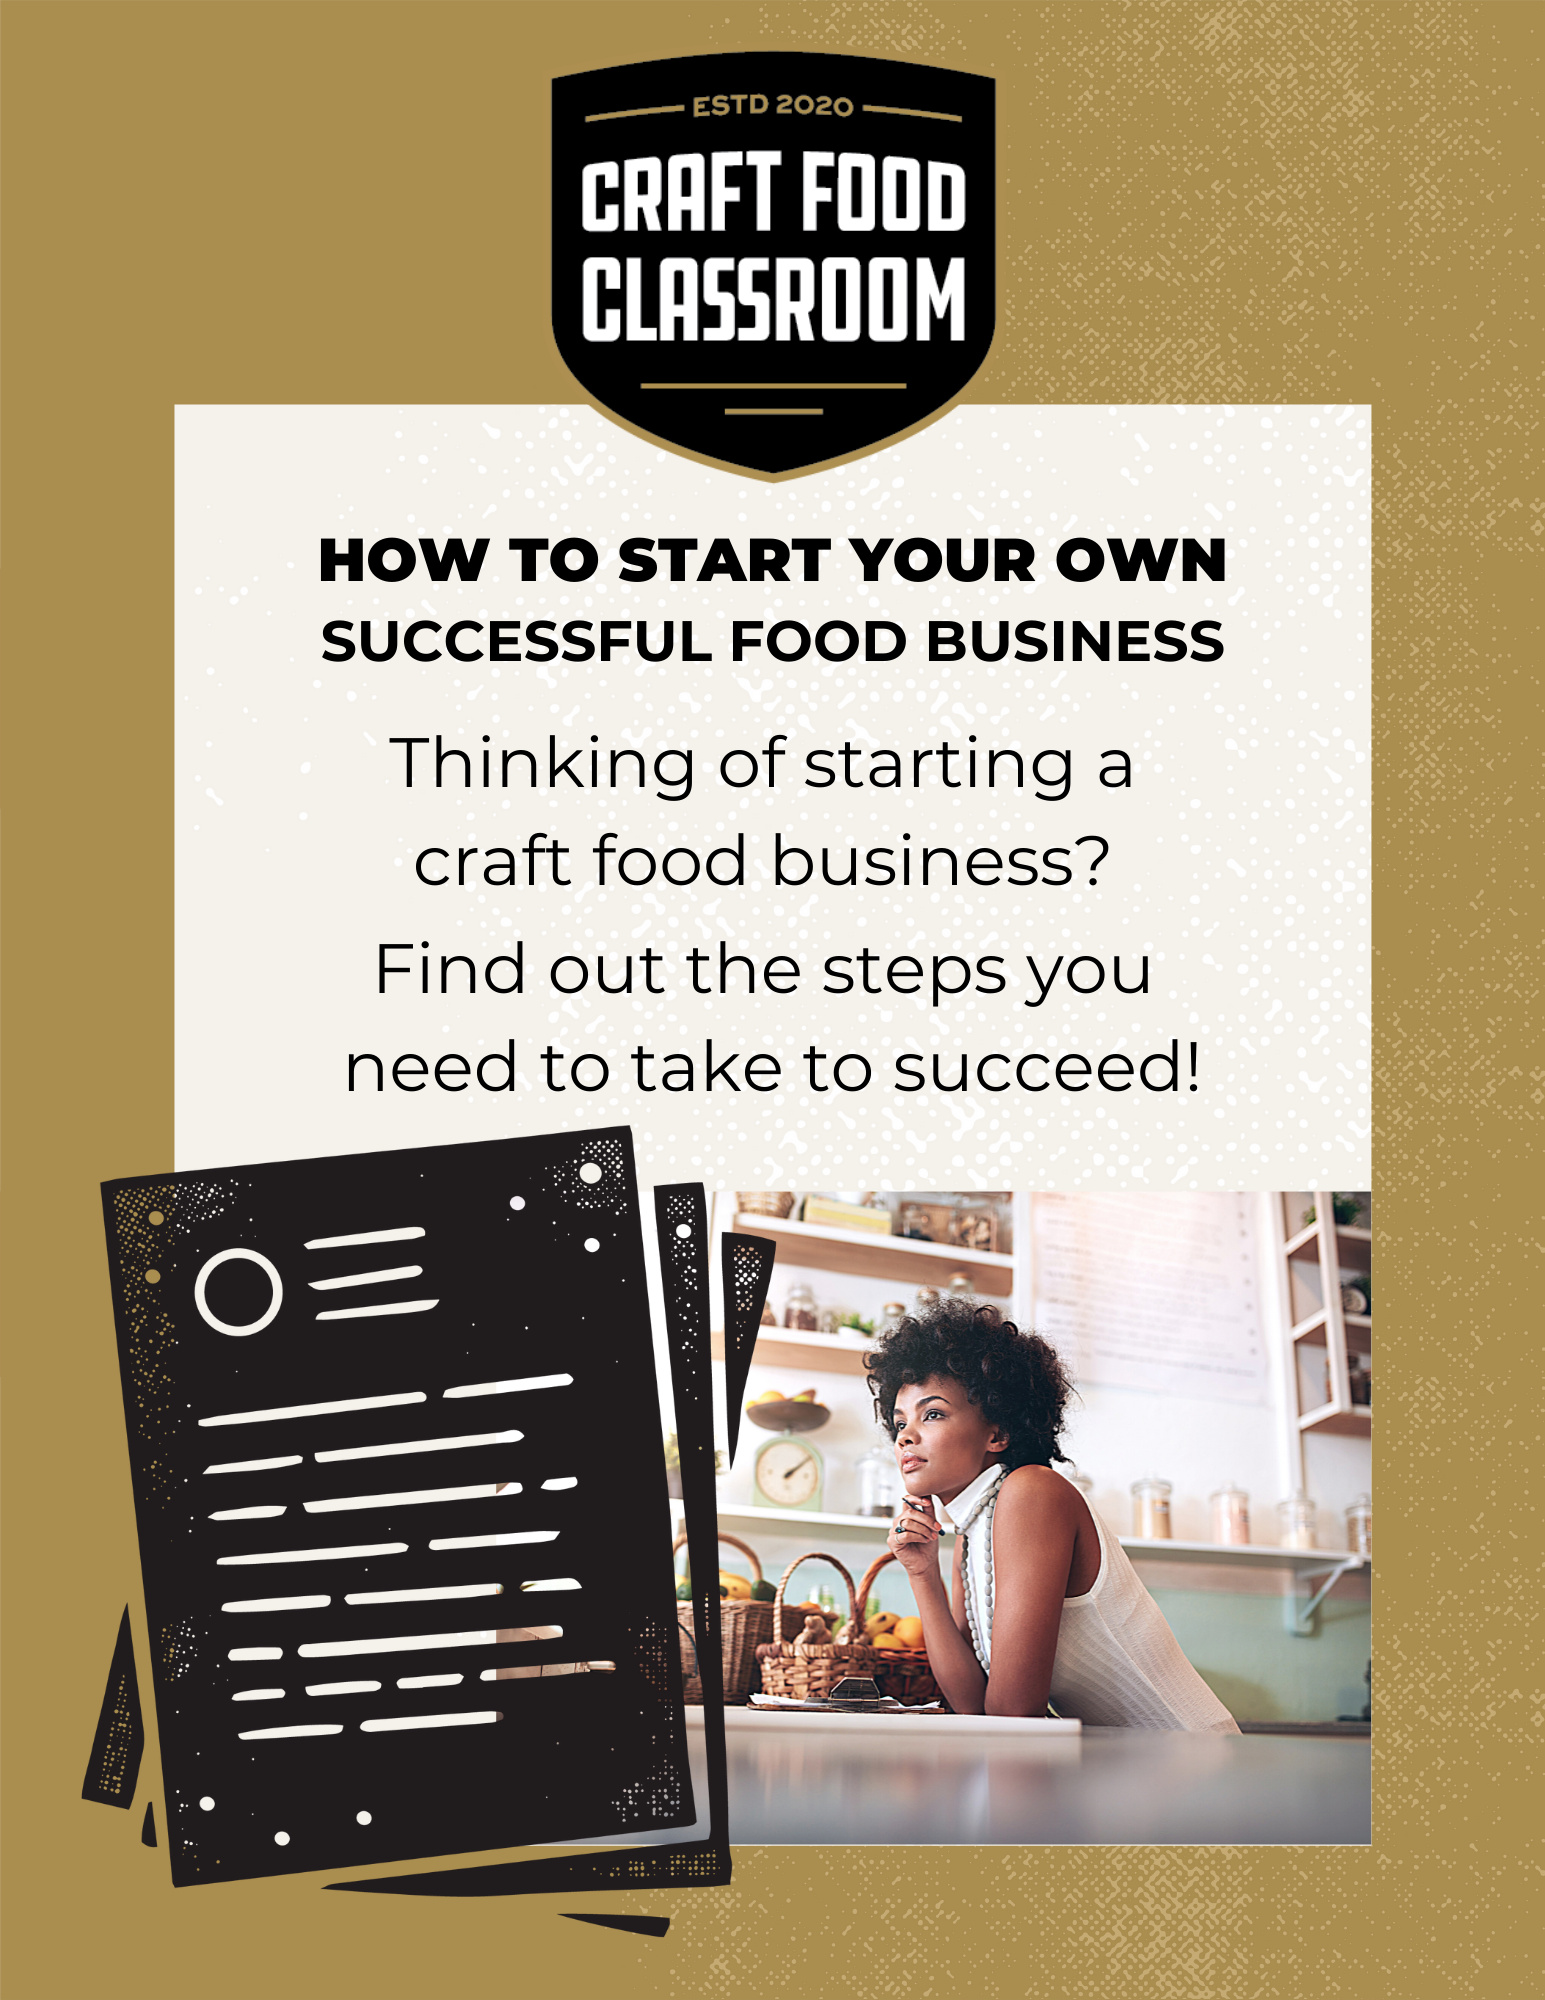 Landing Page Graphic  How to Start Your Own Successful Craft Food Business 07.19.2021